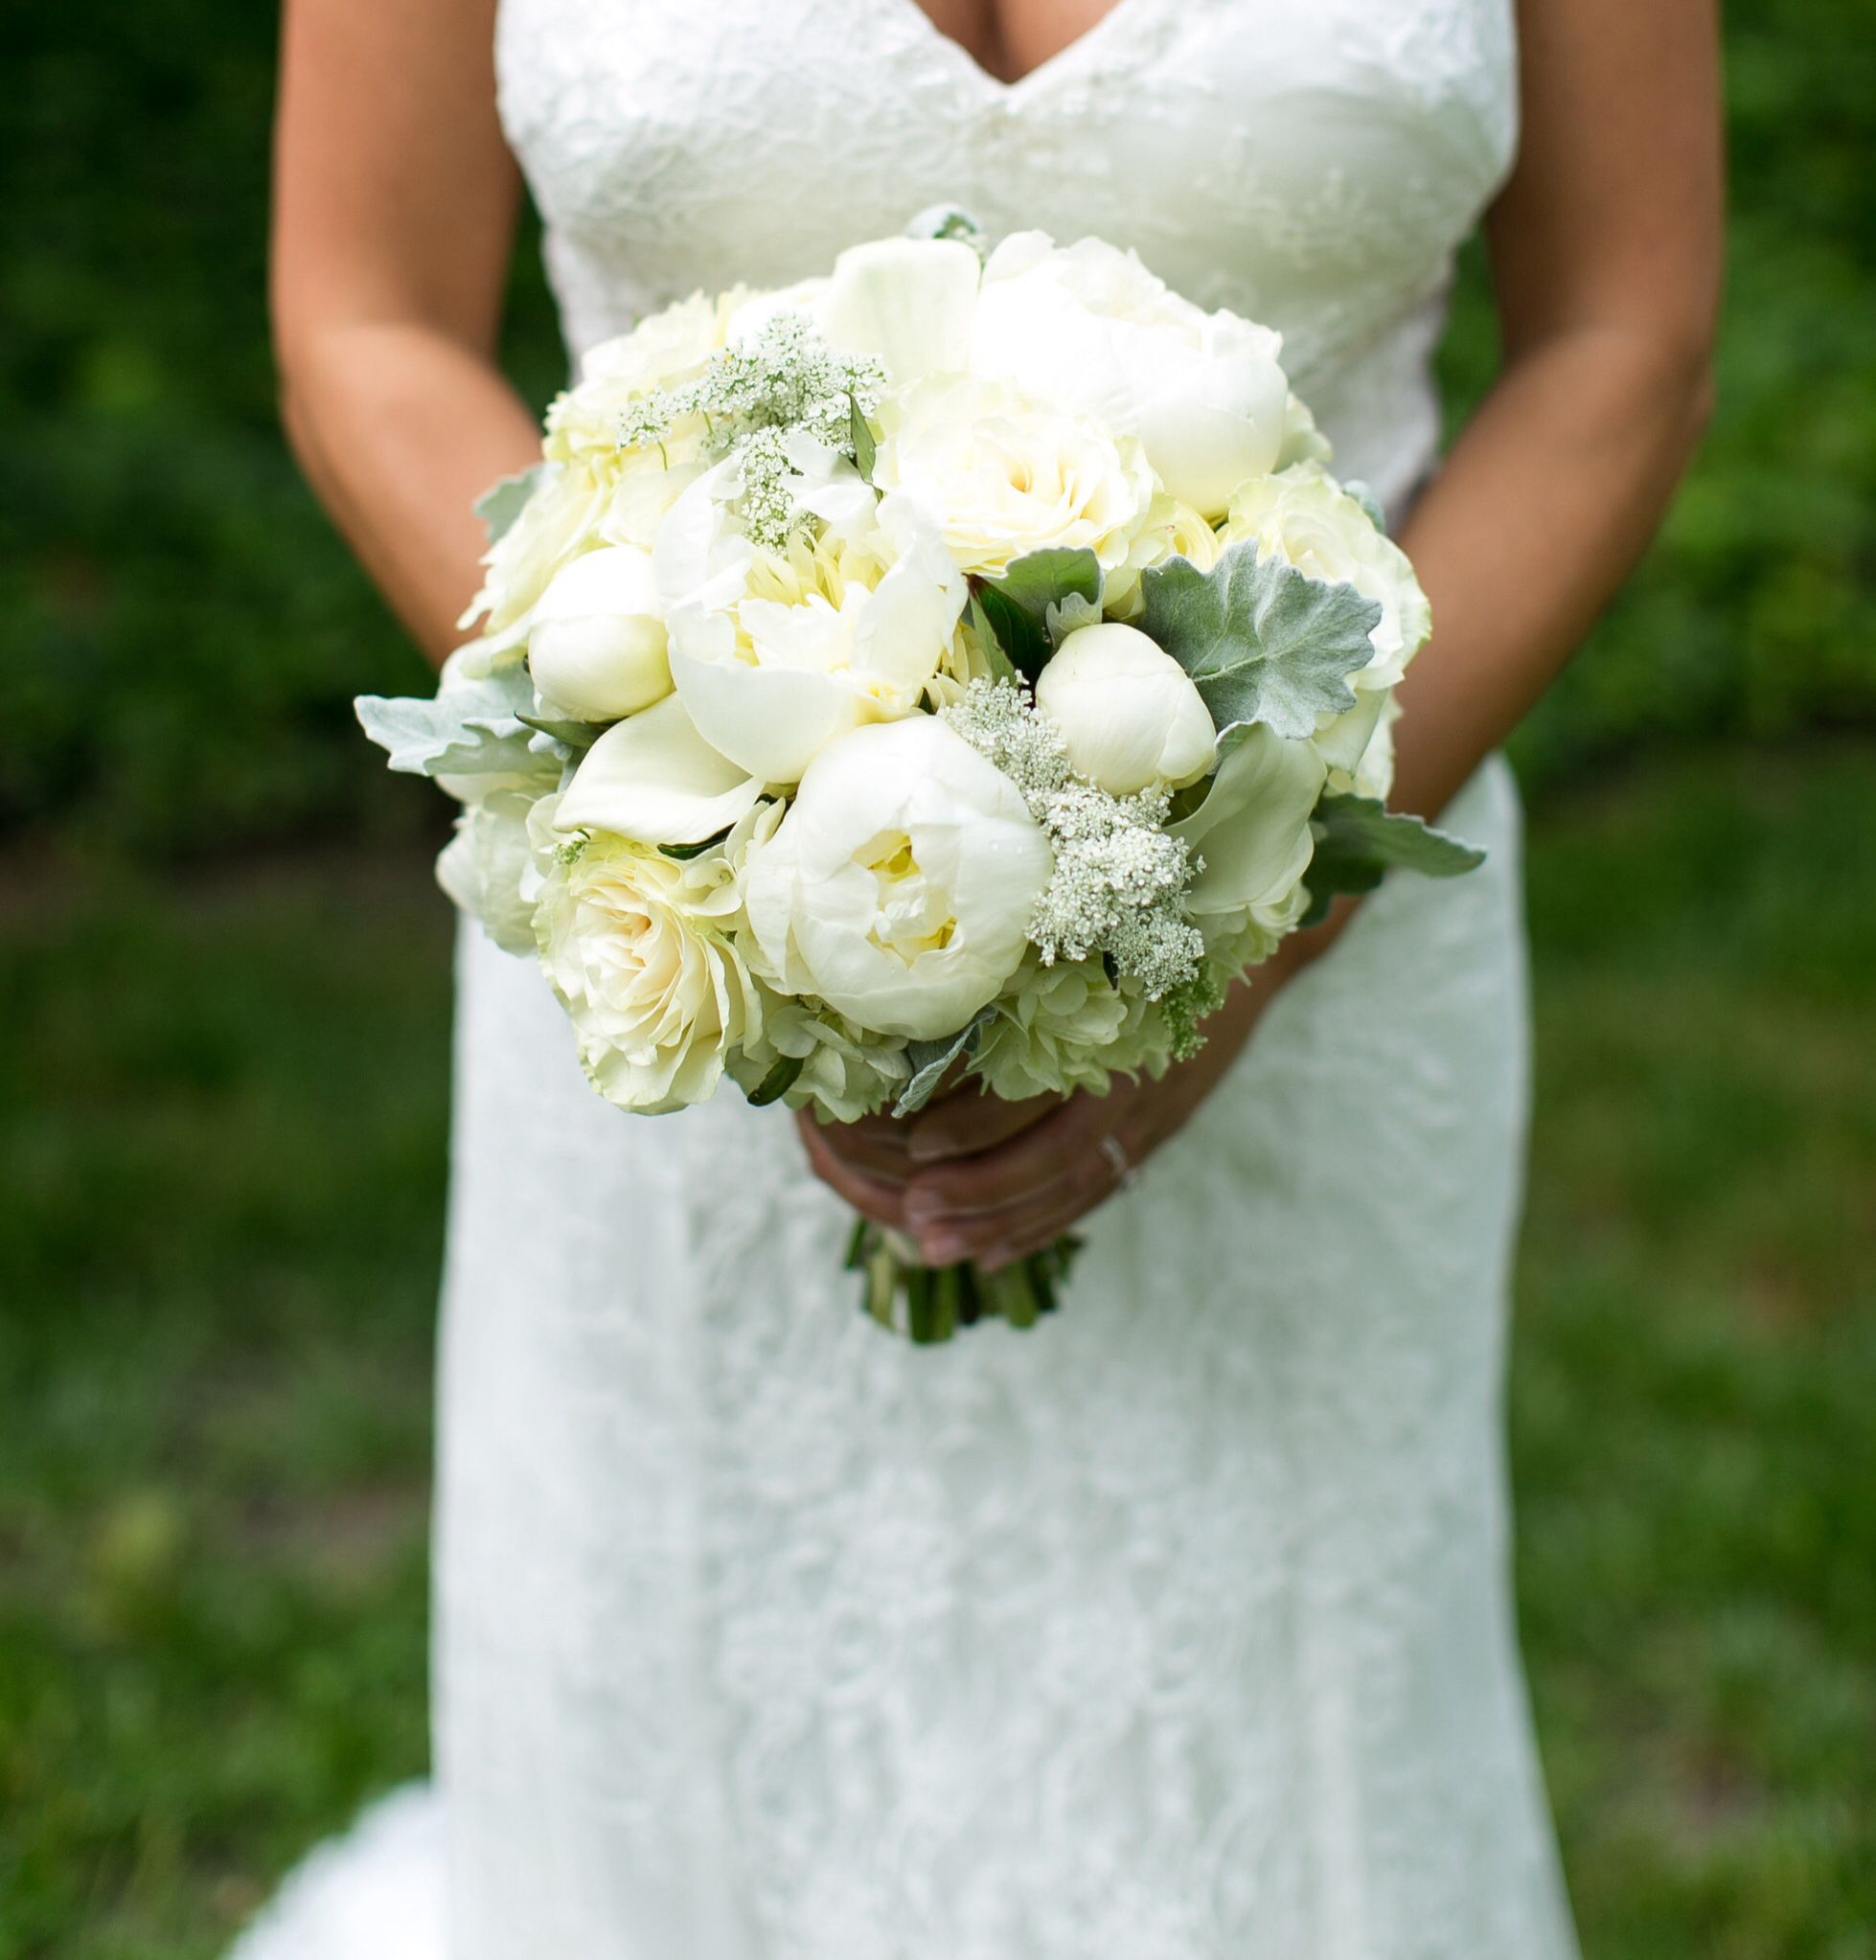 bridal bouquet with white peonies white garden roses queen annes lace dusty miller